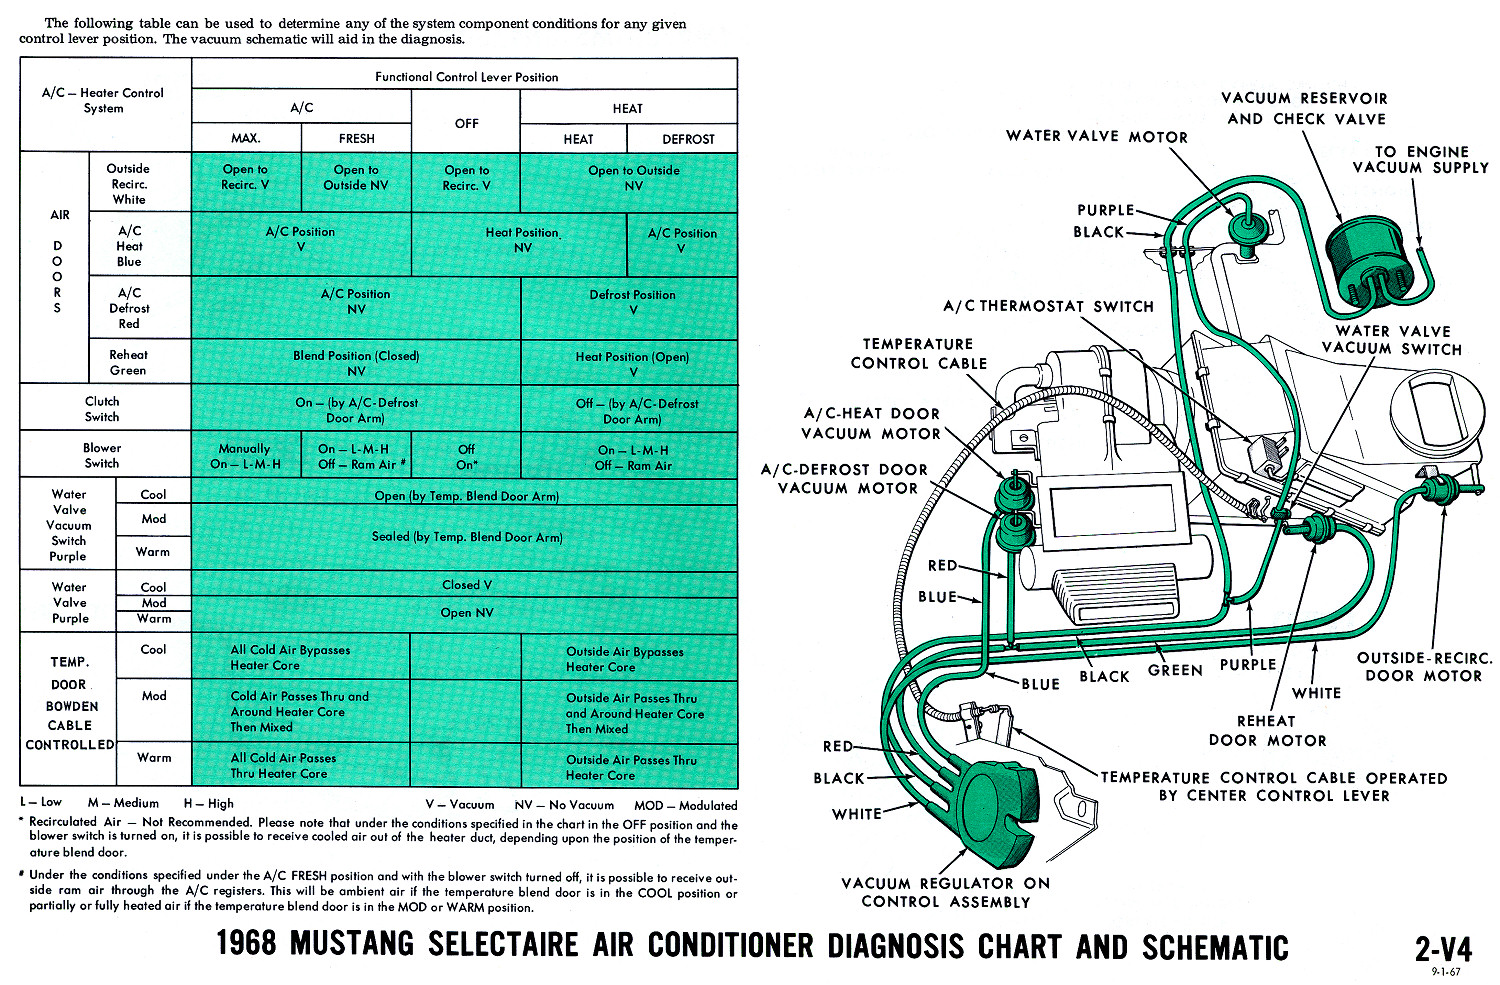 No 6718 Wiring Diagram Moreover 1967 Ford Mustang Wiring Diagram Also 1968 Schematic Wiring